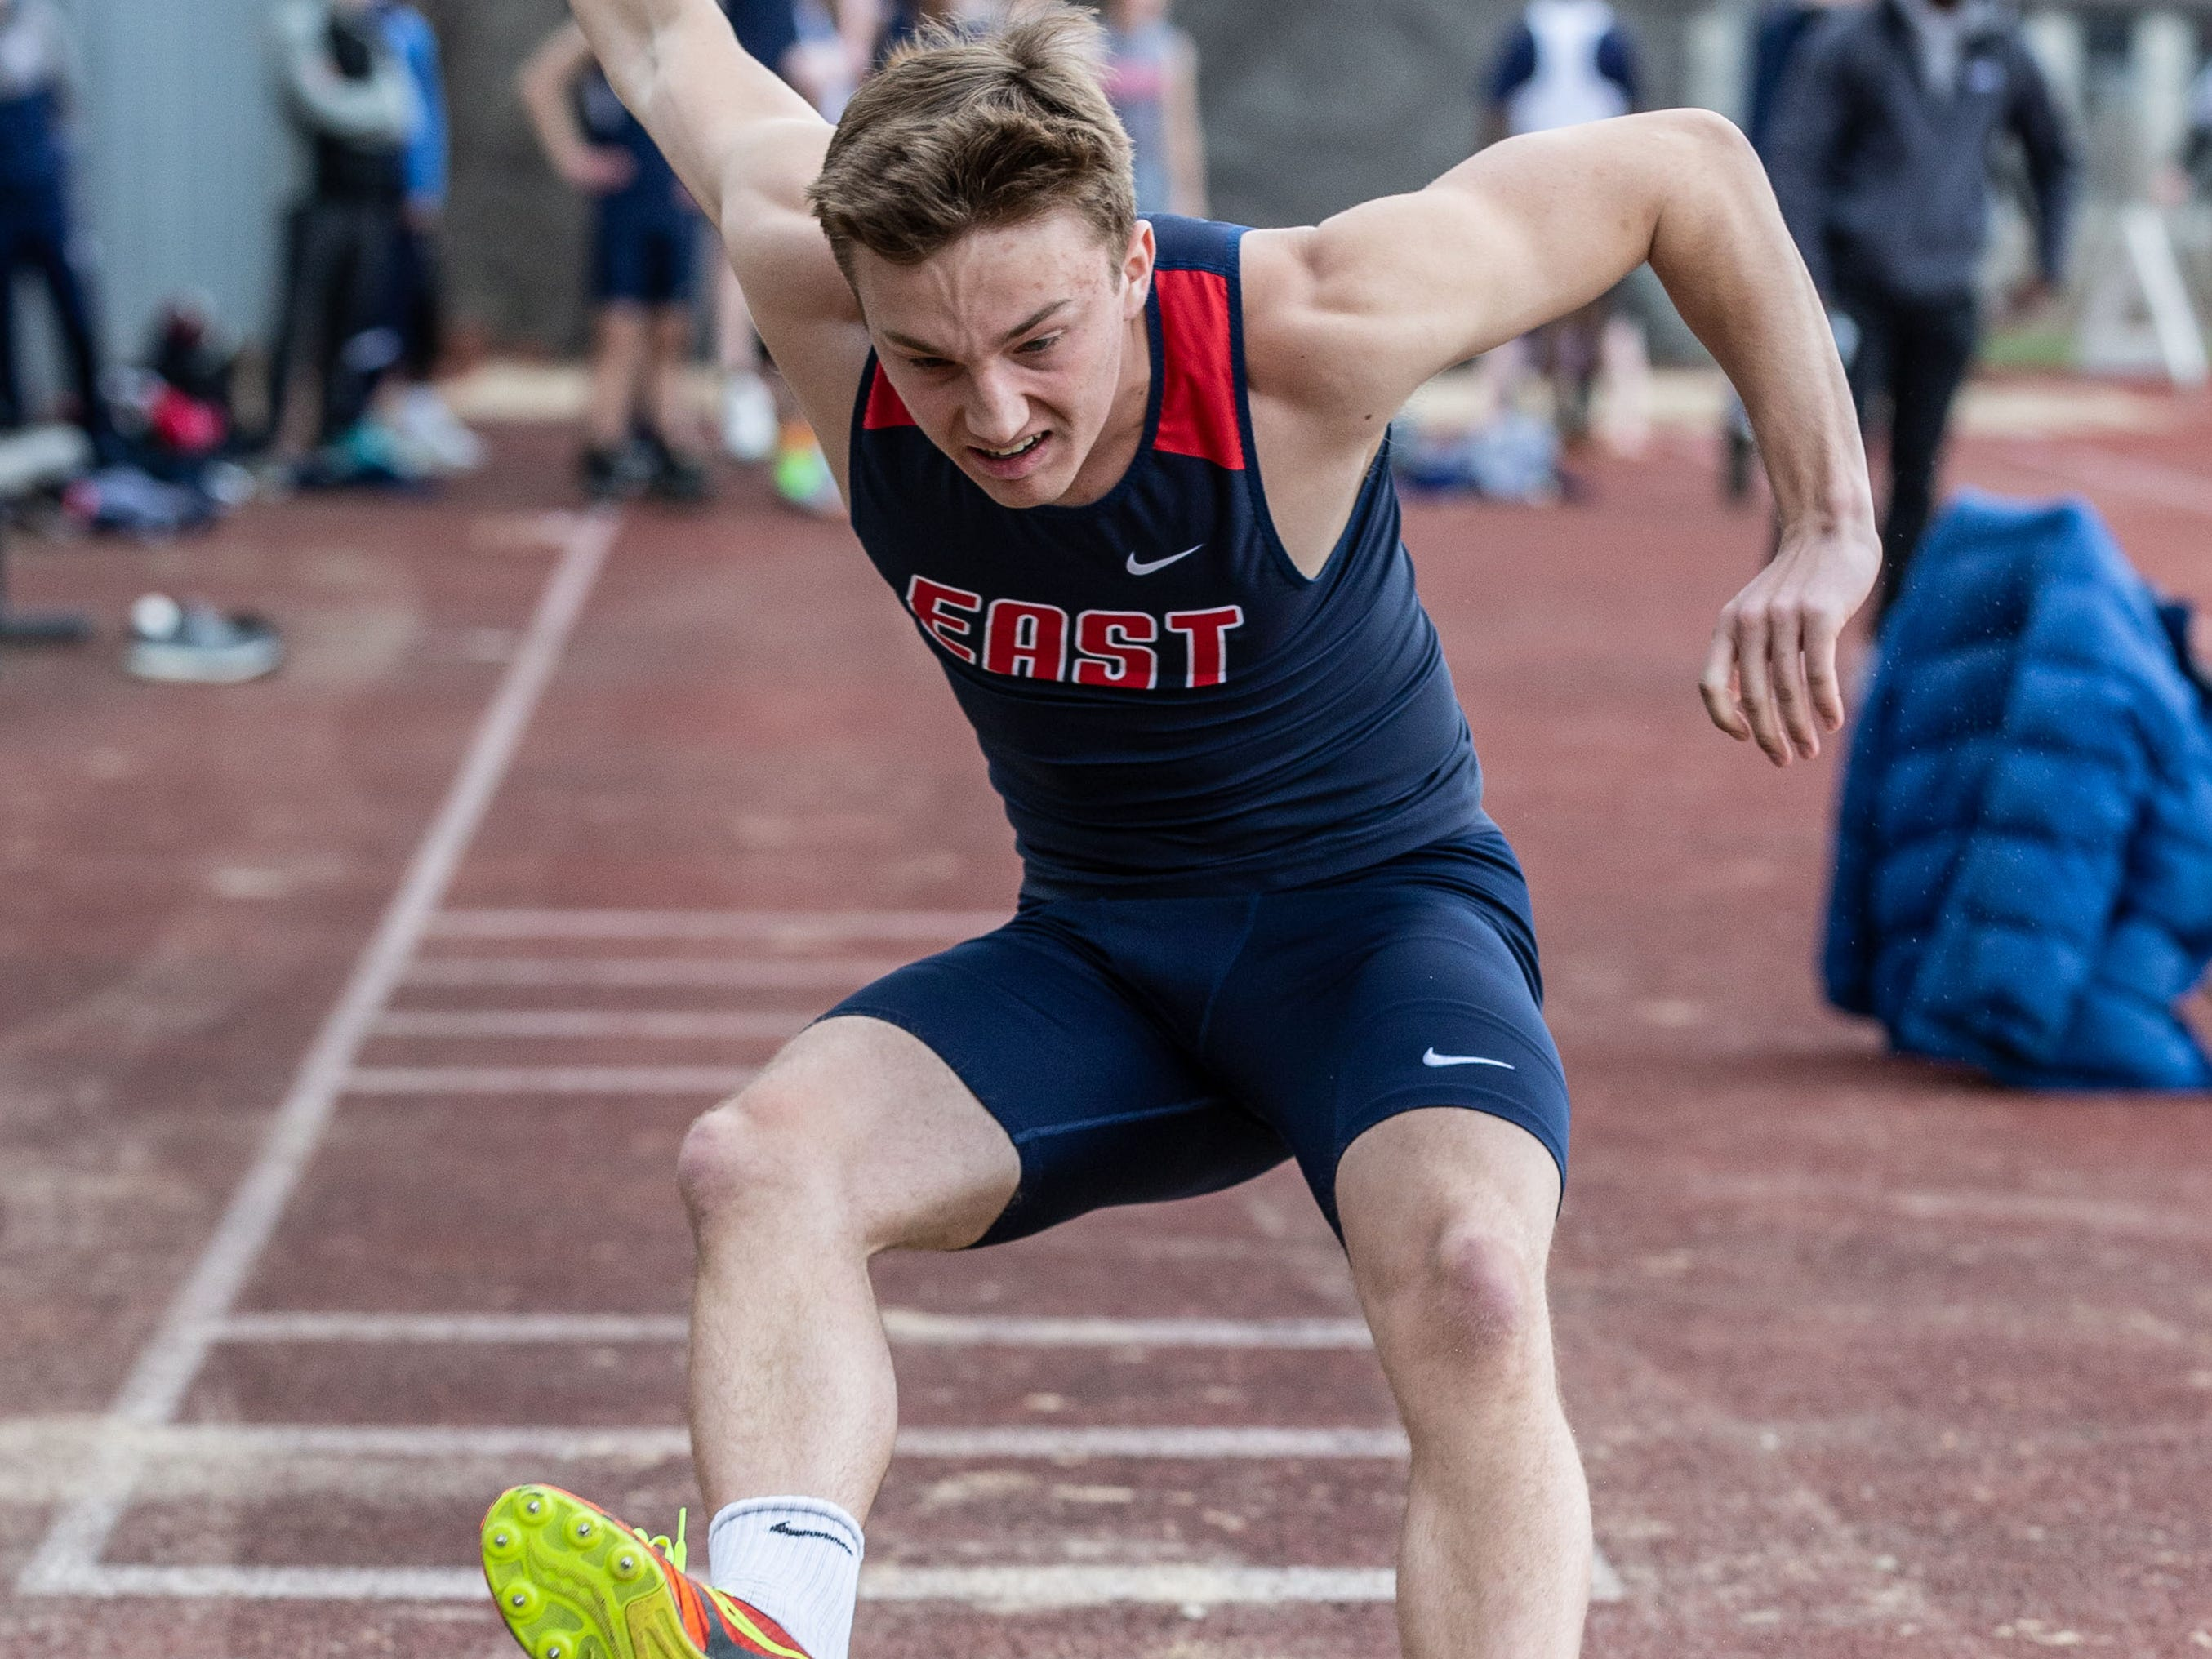 Brookfield East's Owen Herzog competes in the long jump during the Mike Gain 50th Annual Spartan Invitational at Brookfield East on Tuesday, April 9, 2019.